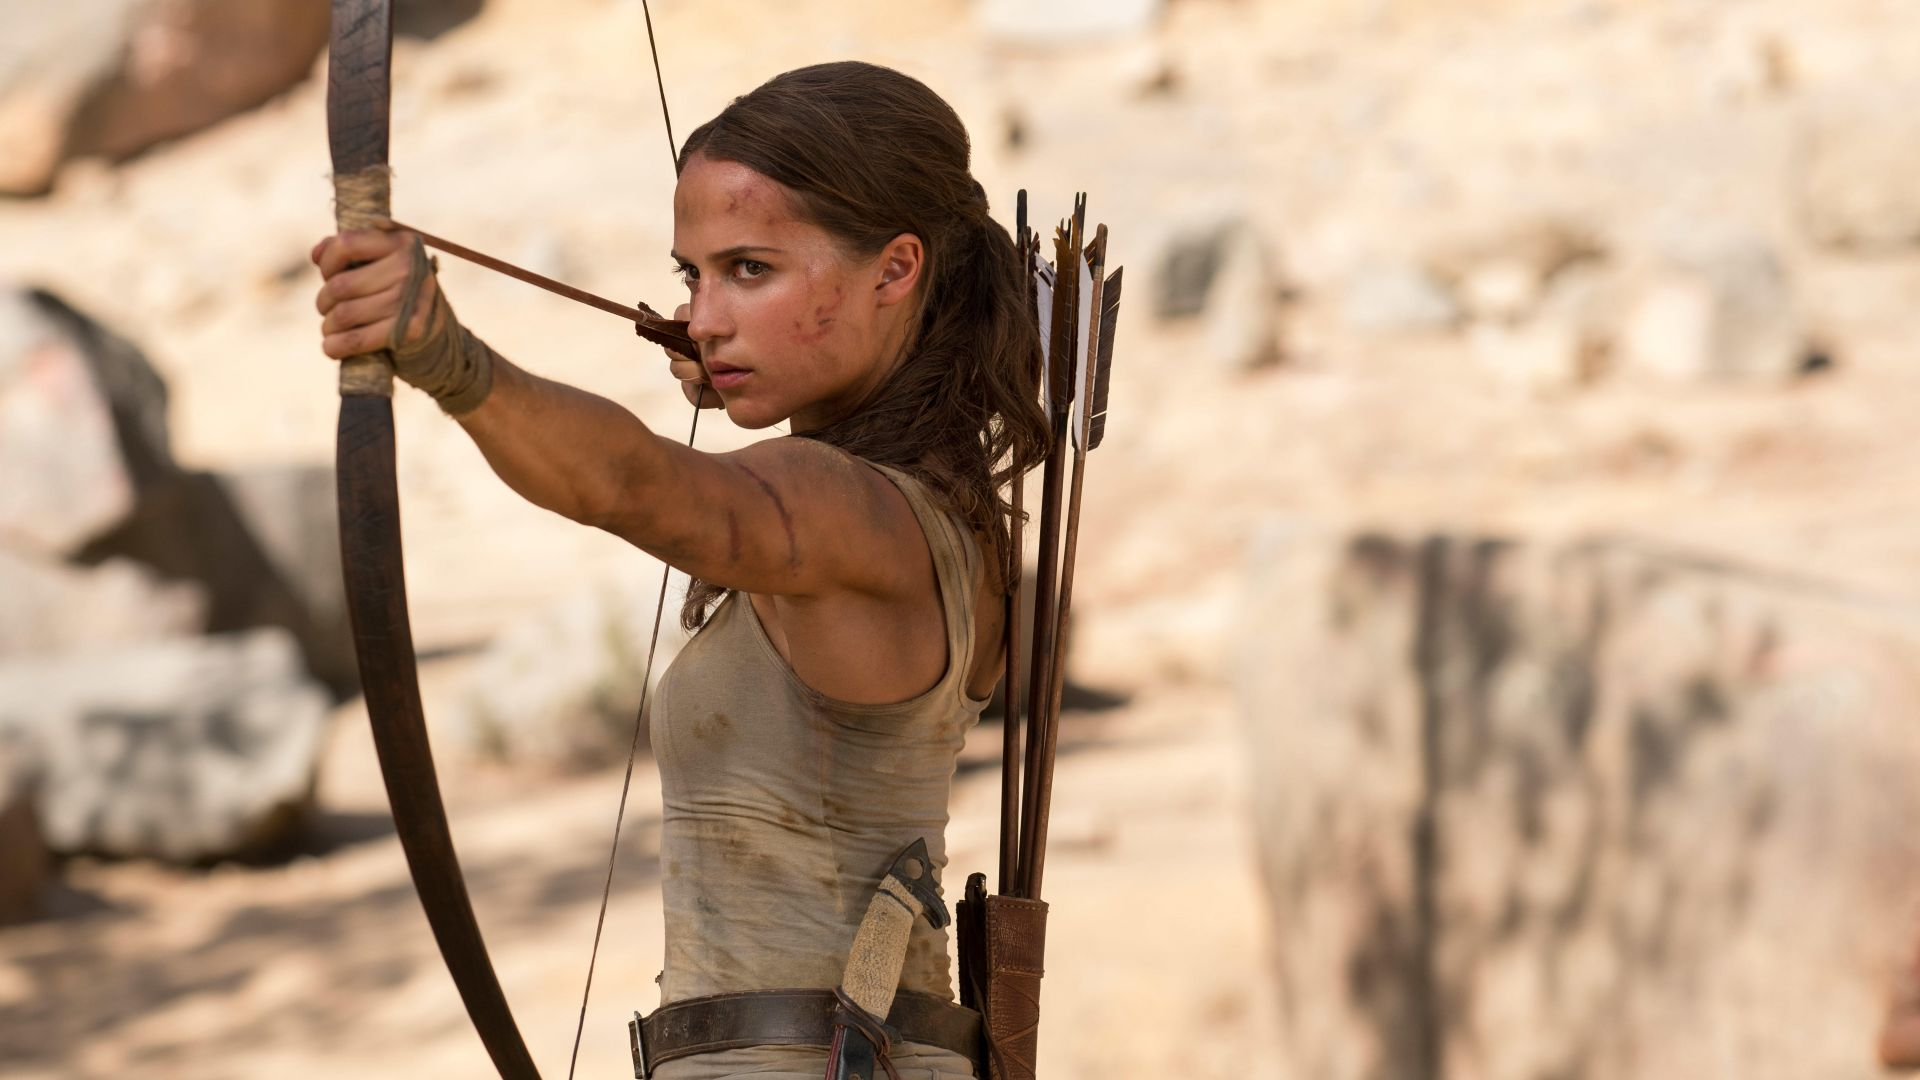 Lara Croft, Tomb Raider, Alicia Vikander, 5k (horizontal)